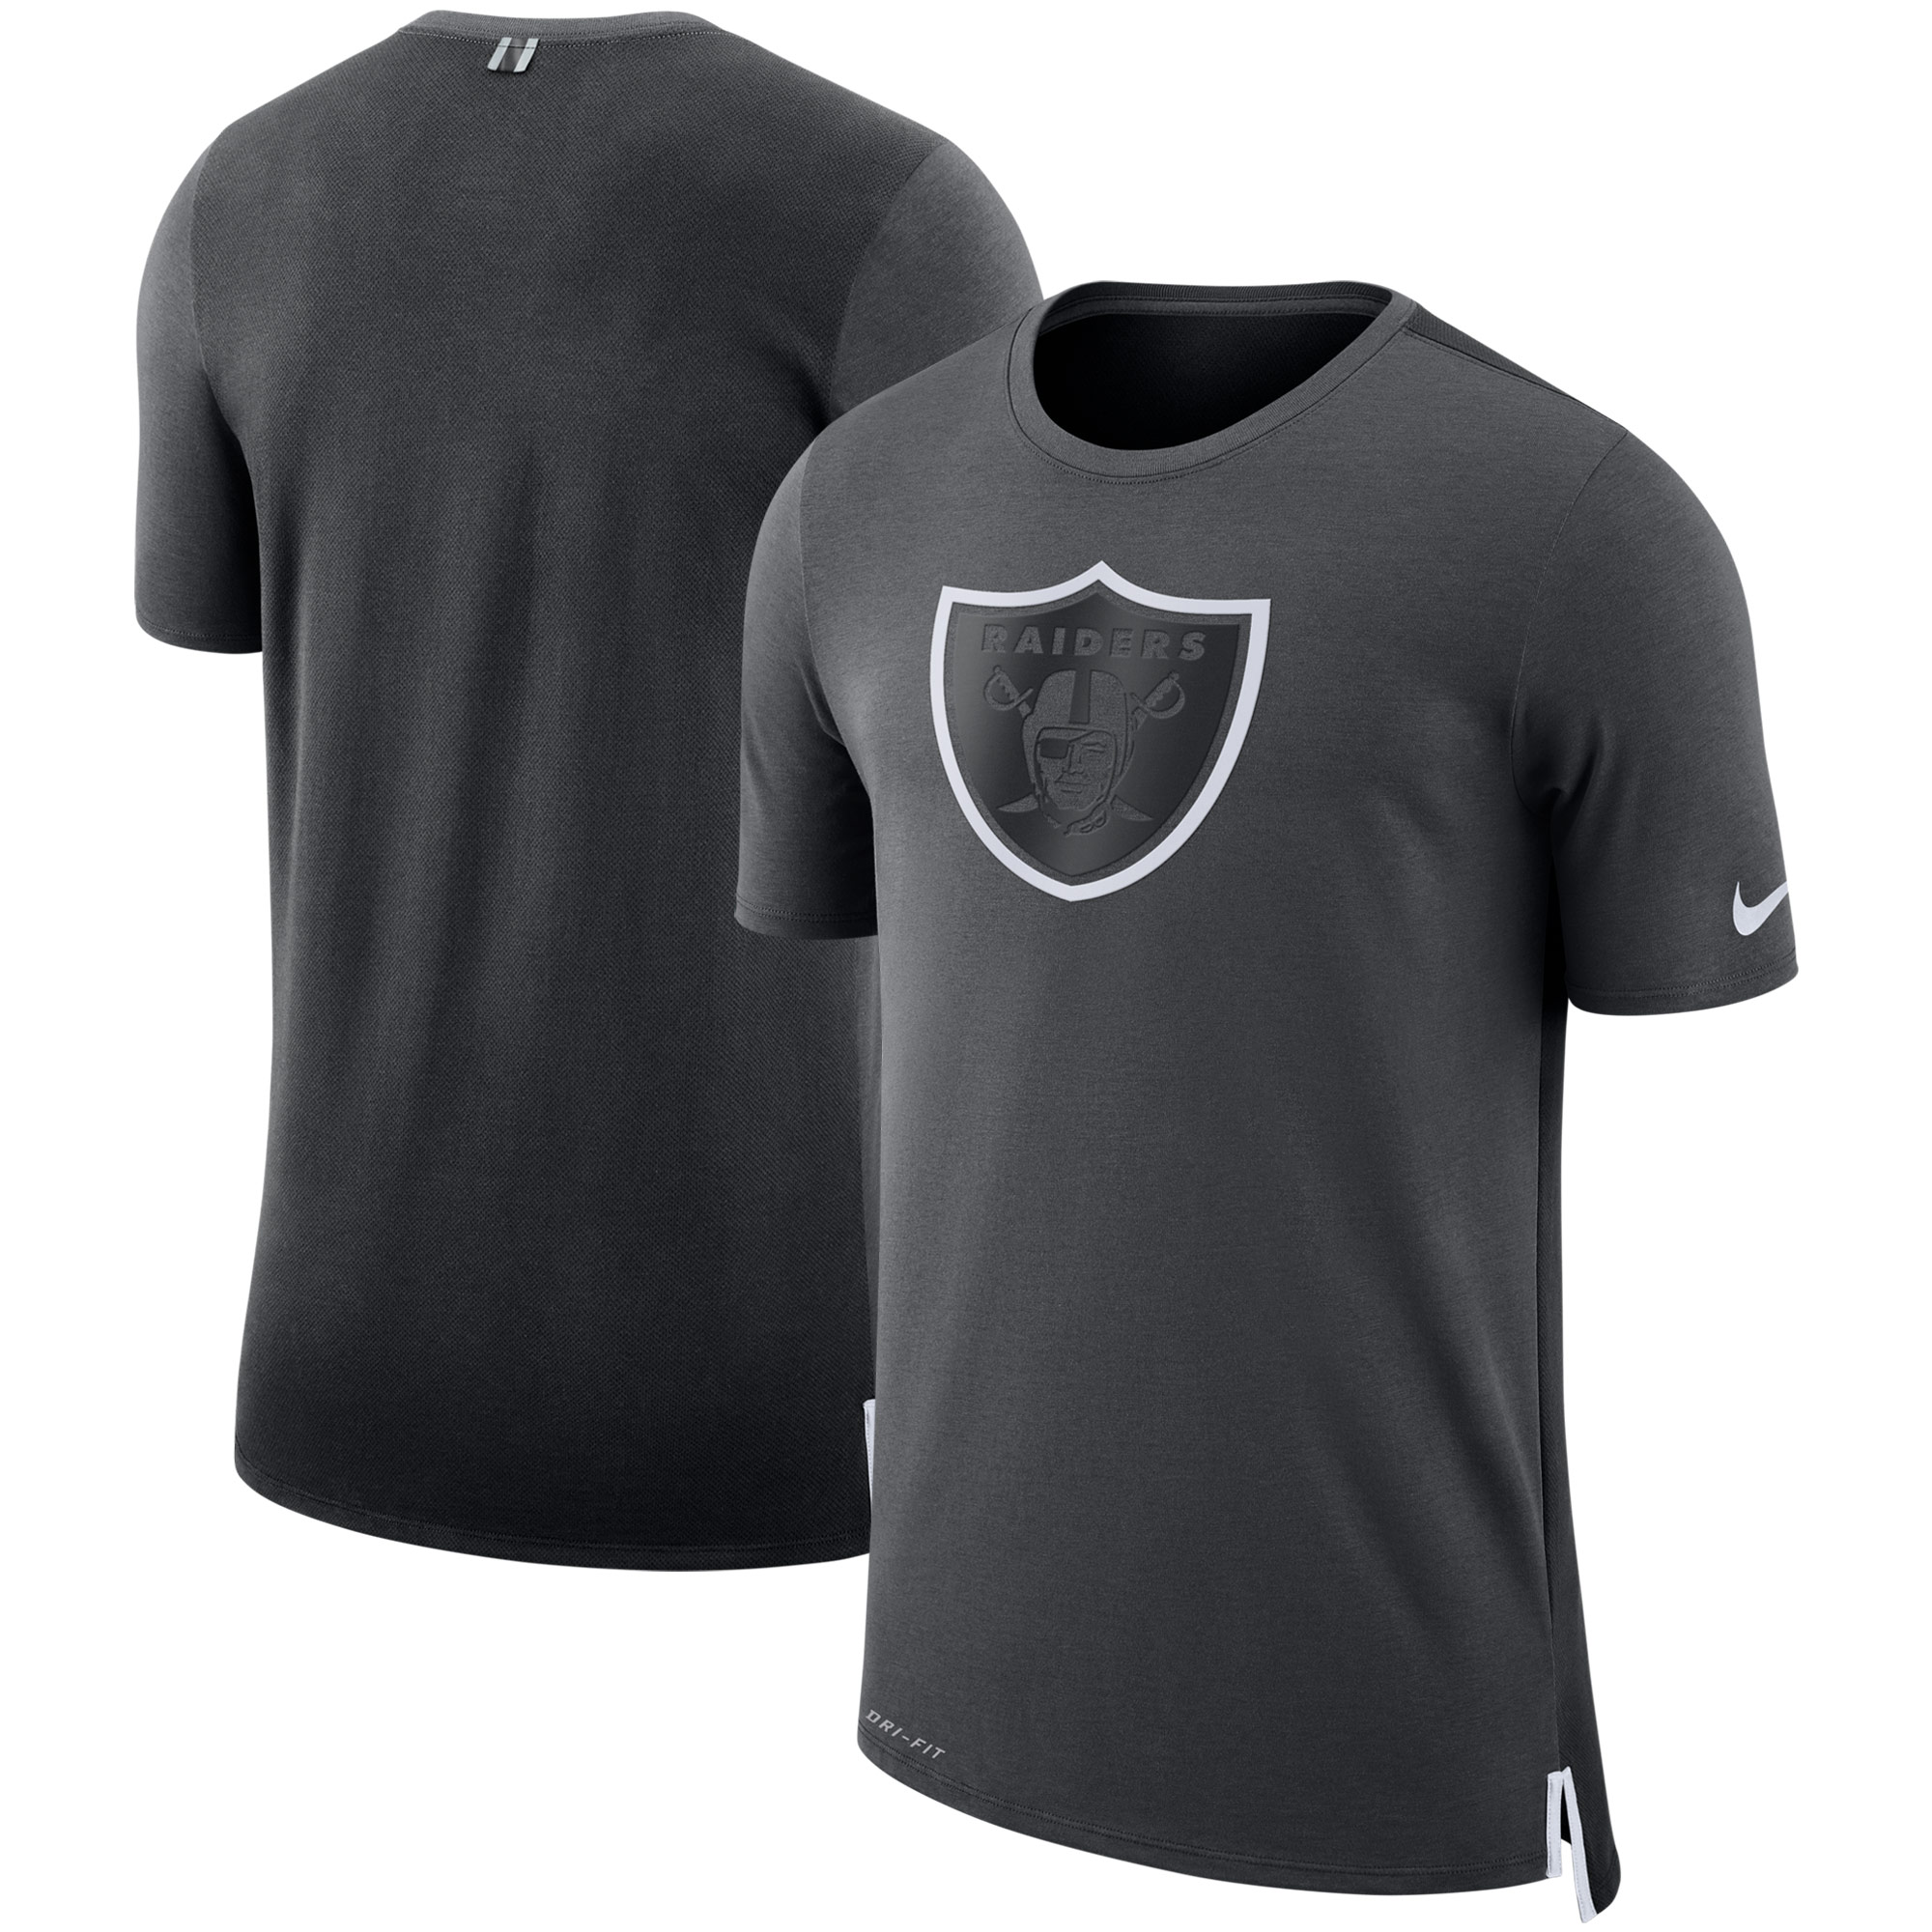 Oakland Raiders Nike Sideline Travel Mesh Performance T-Shirt - Charcoal/Black